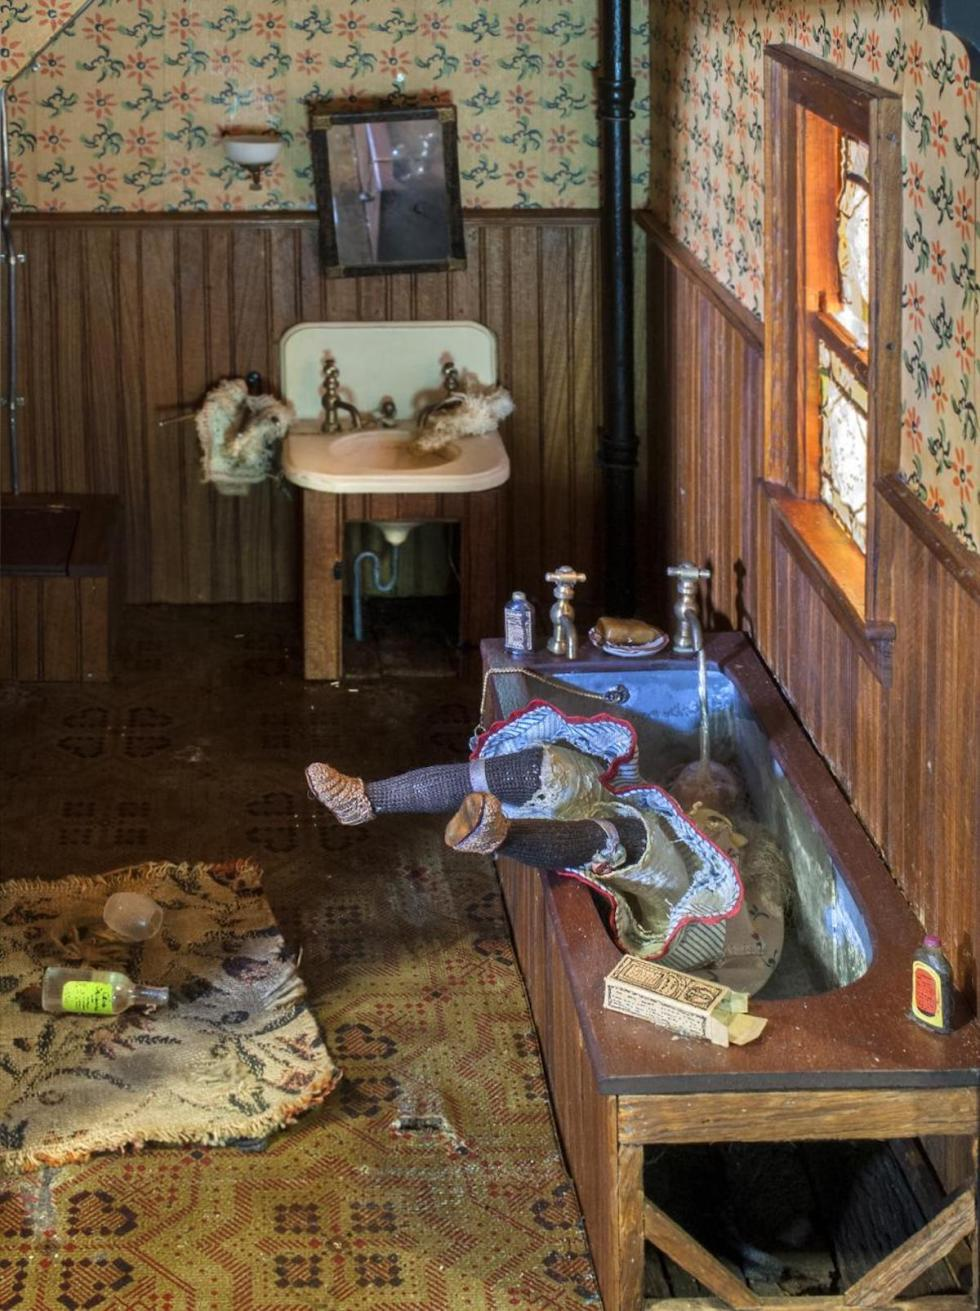 Frances Glessner Lee 'Dark Bathroom' detail